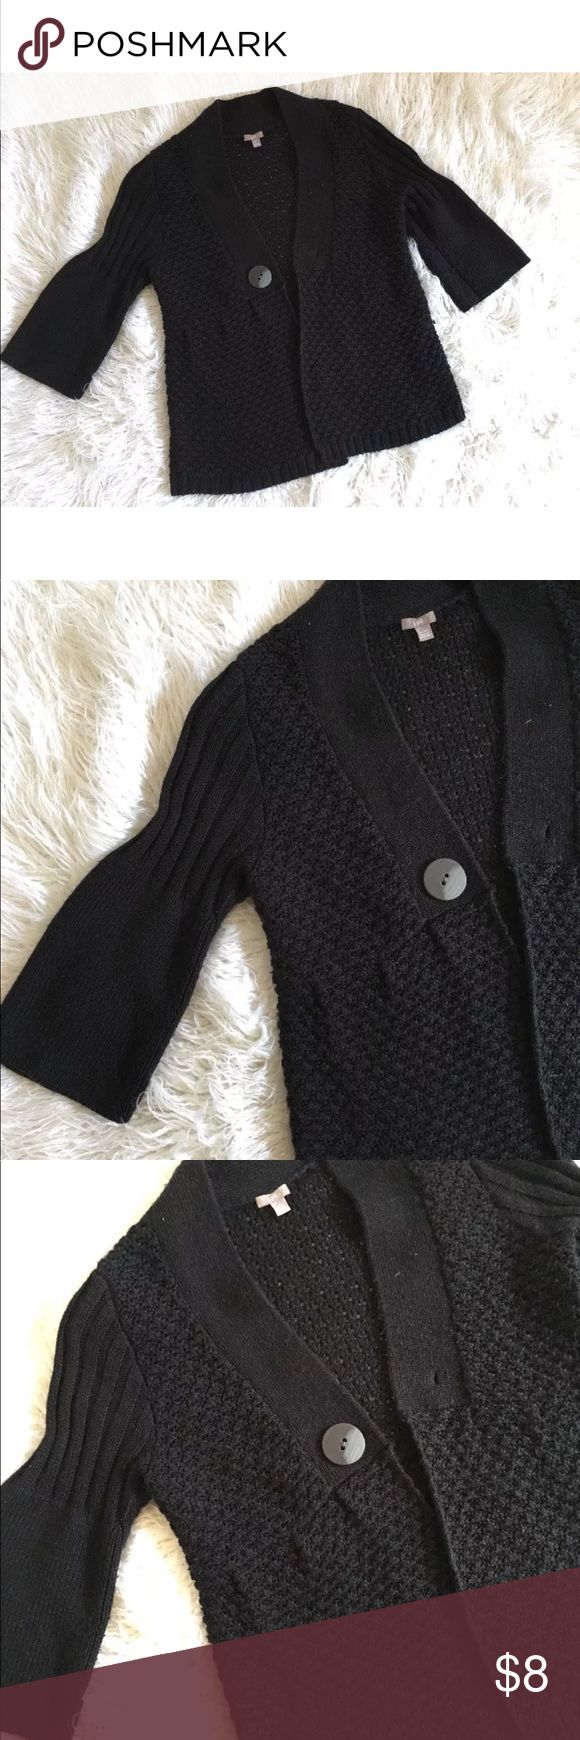 """J.Jill Size L Petite cardigan sweater Gorgeous size large petite in amazing condition  Length 28""""  Armpit to armpit 23""""   The button is not the original it is much bigger so it does not fit the button hole J. Jill Sweaters Cardigans"""